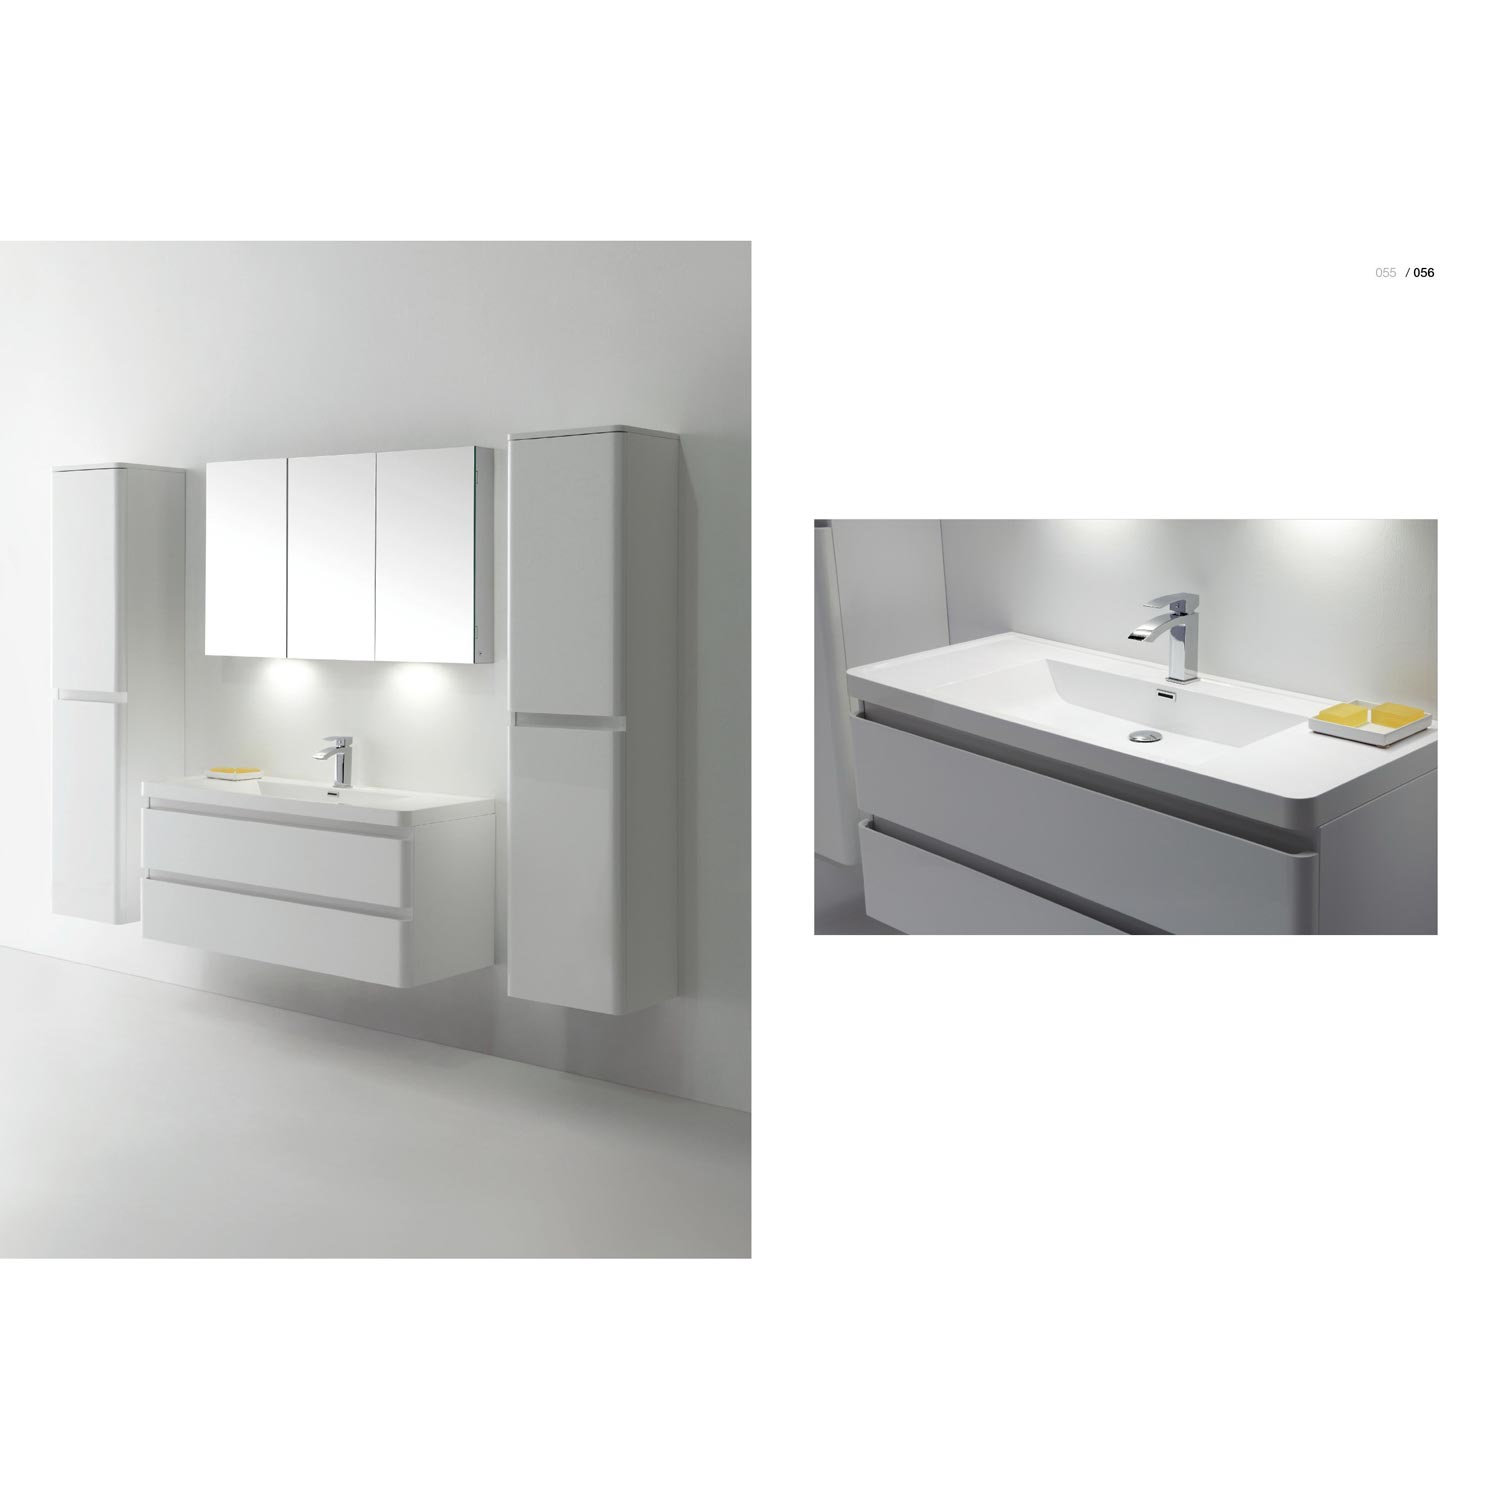 Amaral wall mount bathroom vanity high glossy white for Bathroom wall vanity cabinets